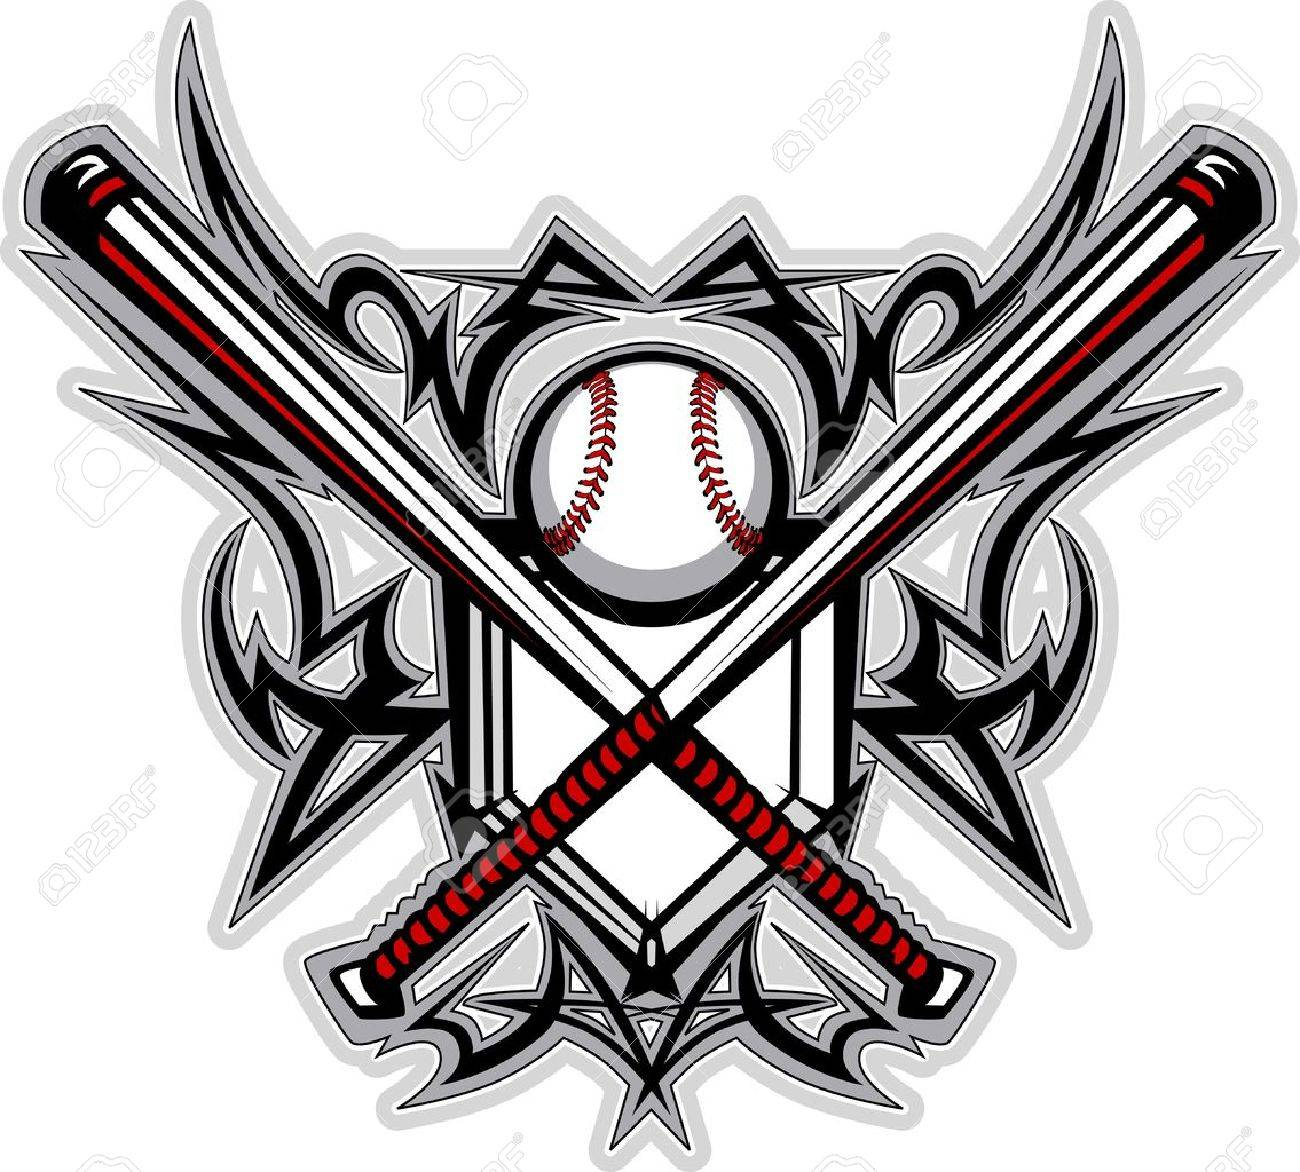 baseball softball bats tribal graphic image royalty free cliparts rh 123rf com Baseball Bat Vector Logo Baseball Bat Clip Art Vector